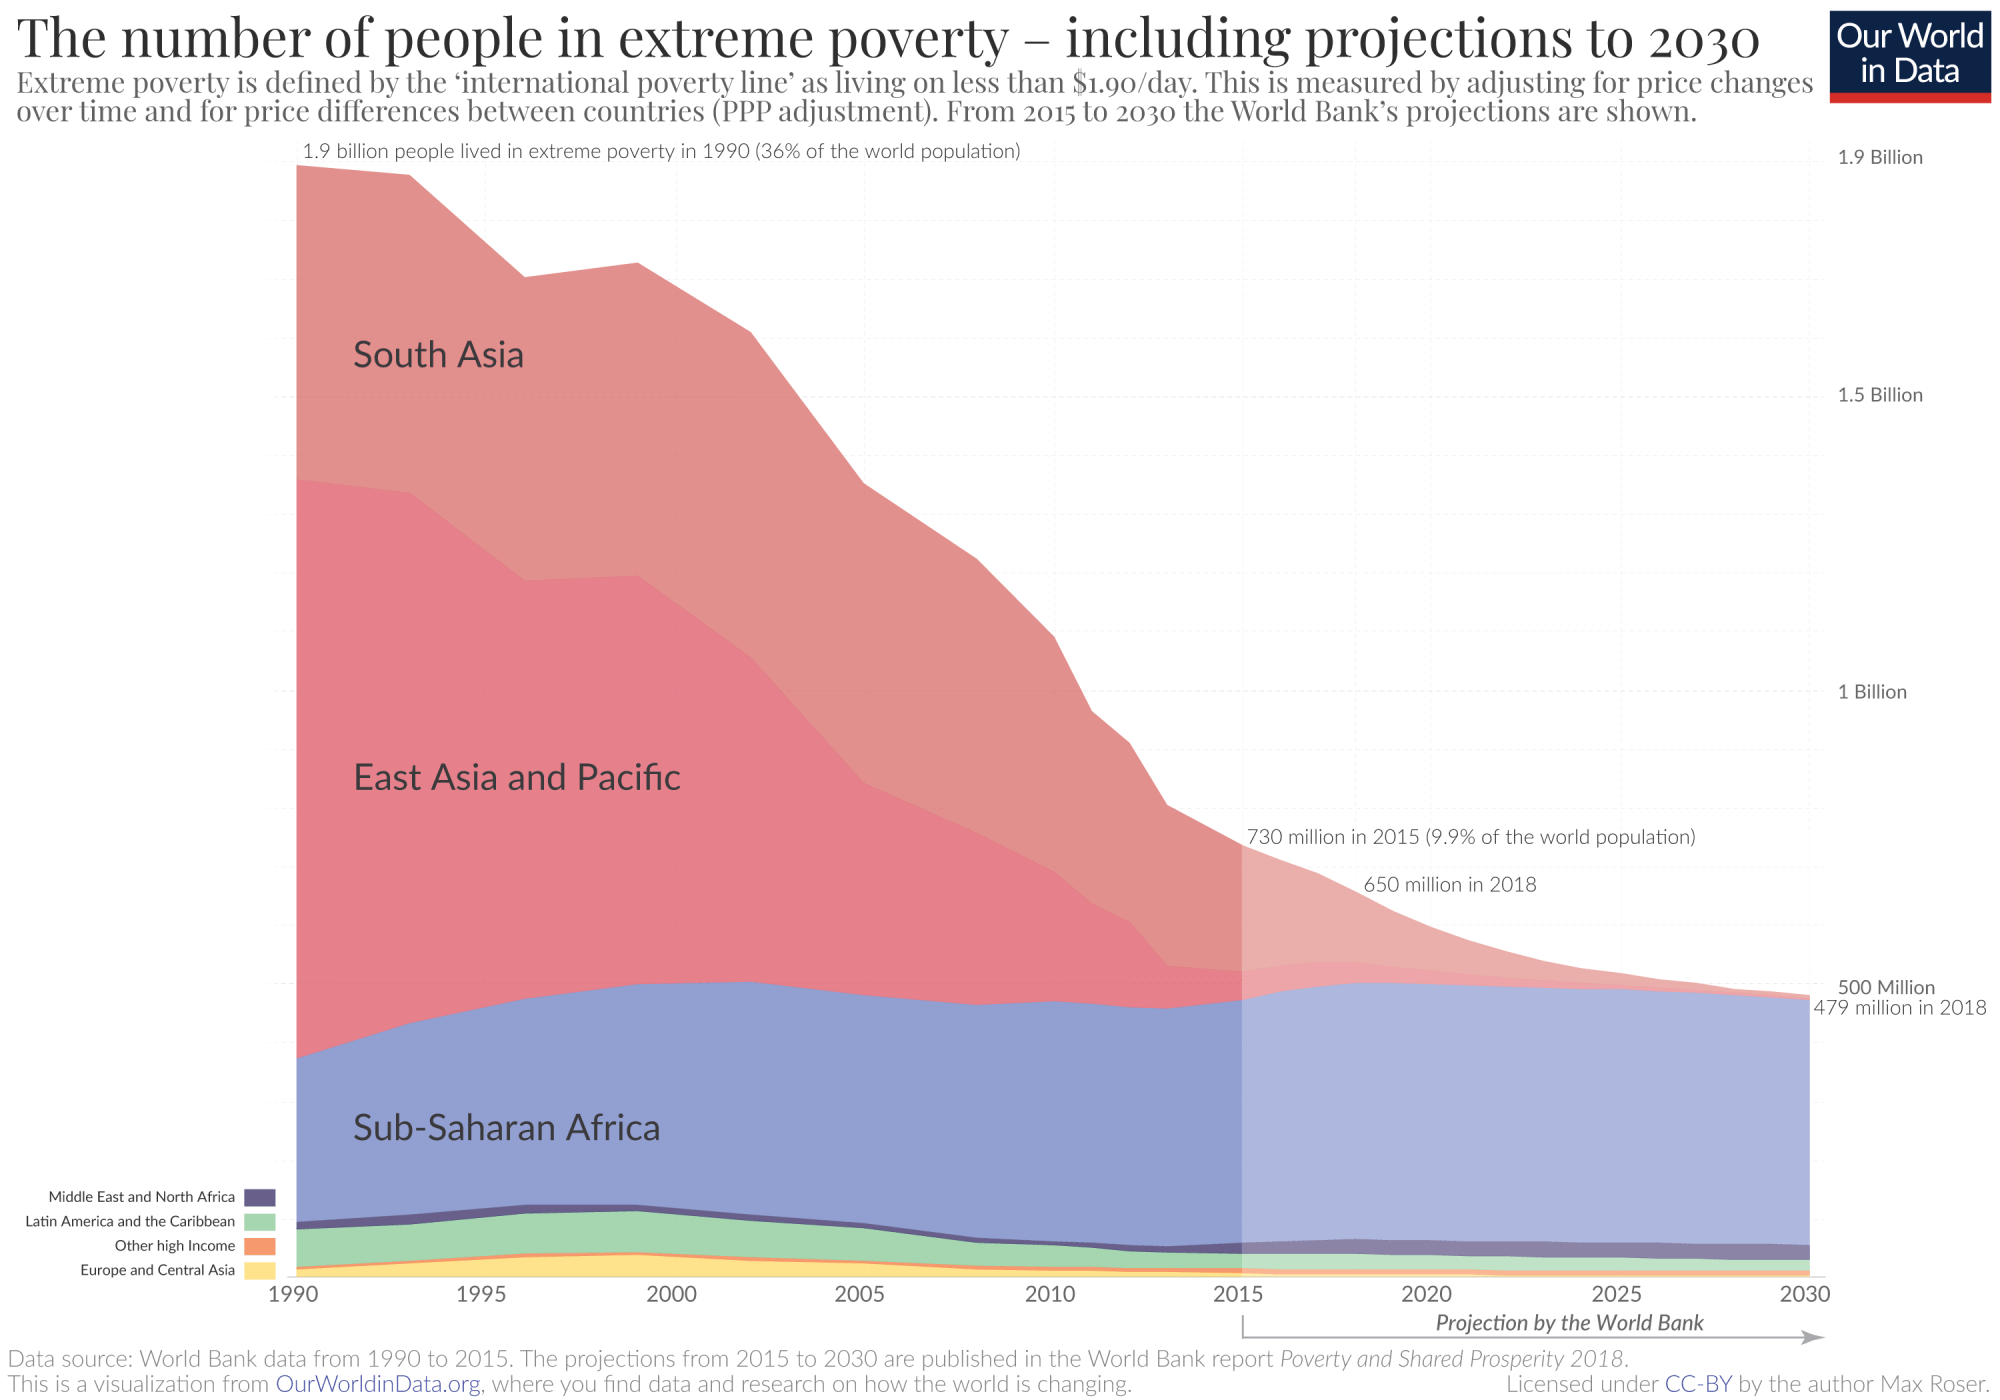 hight resolution of extreme poverty projection by the world bank to 2030